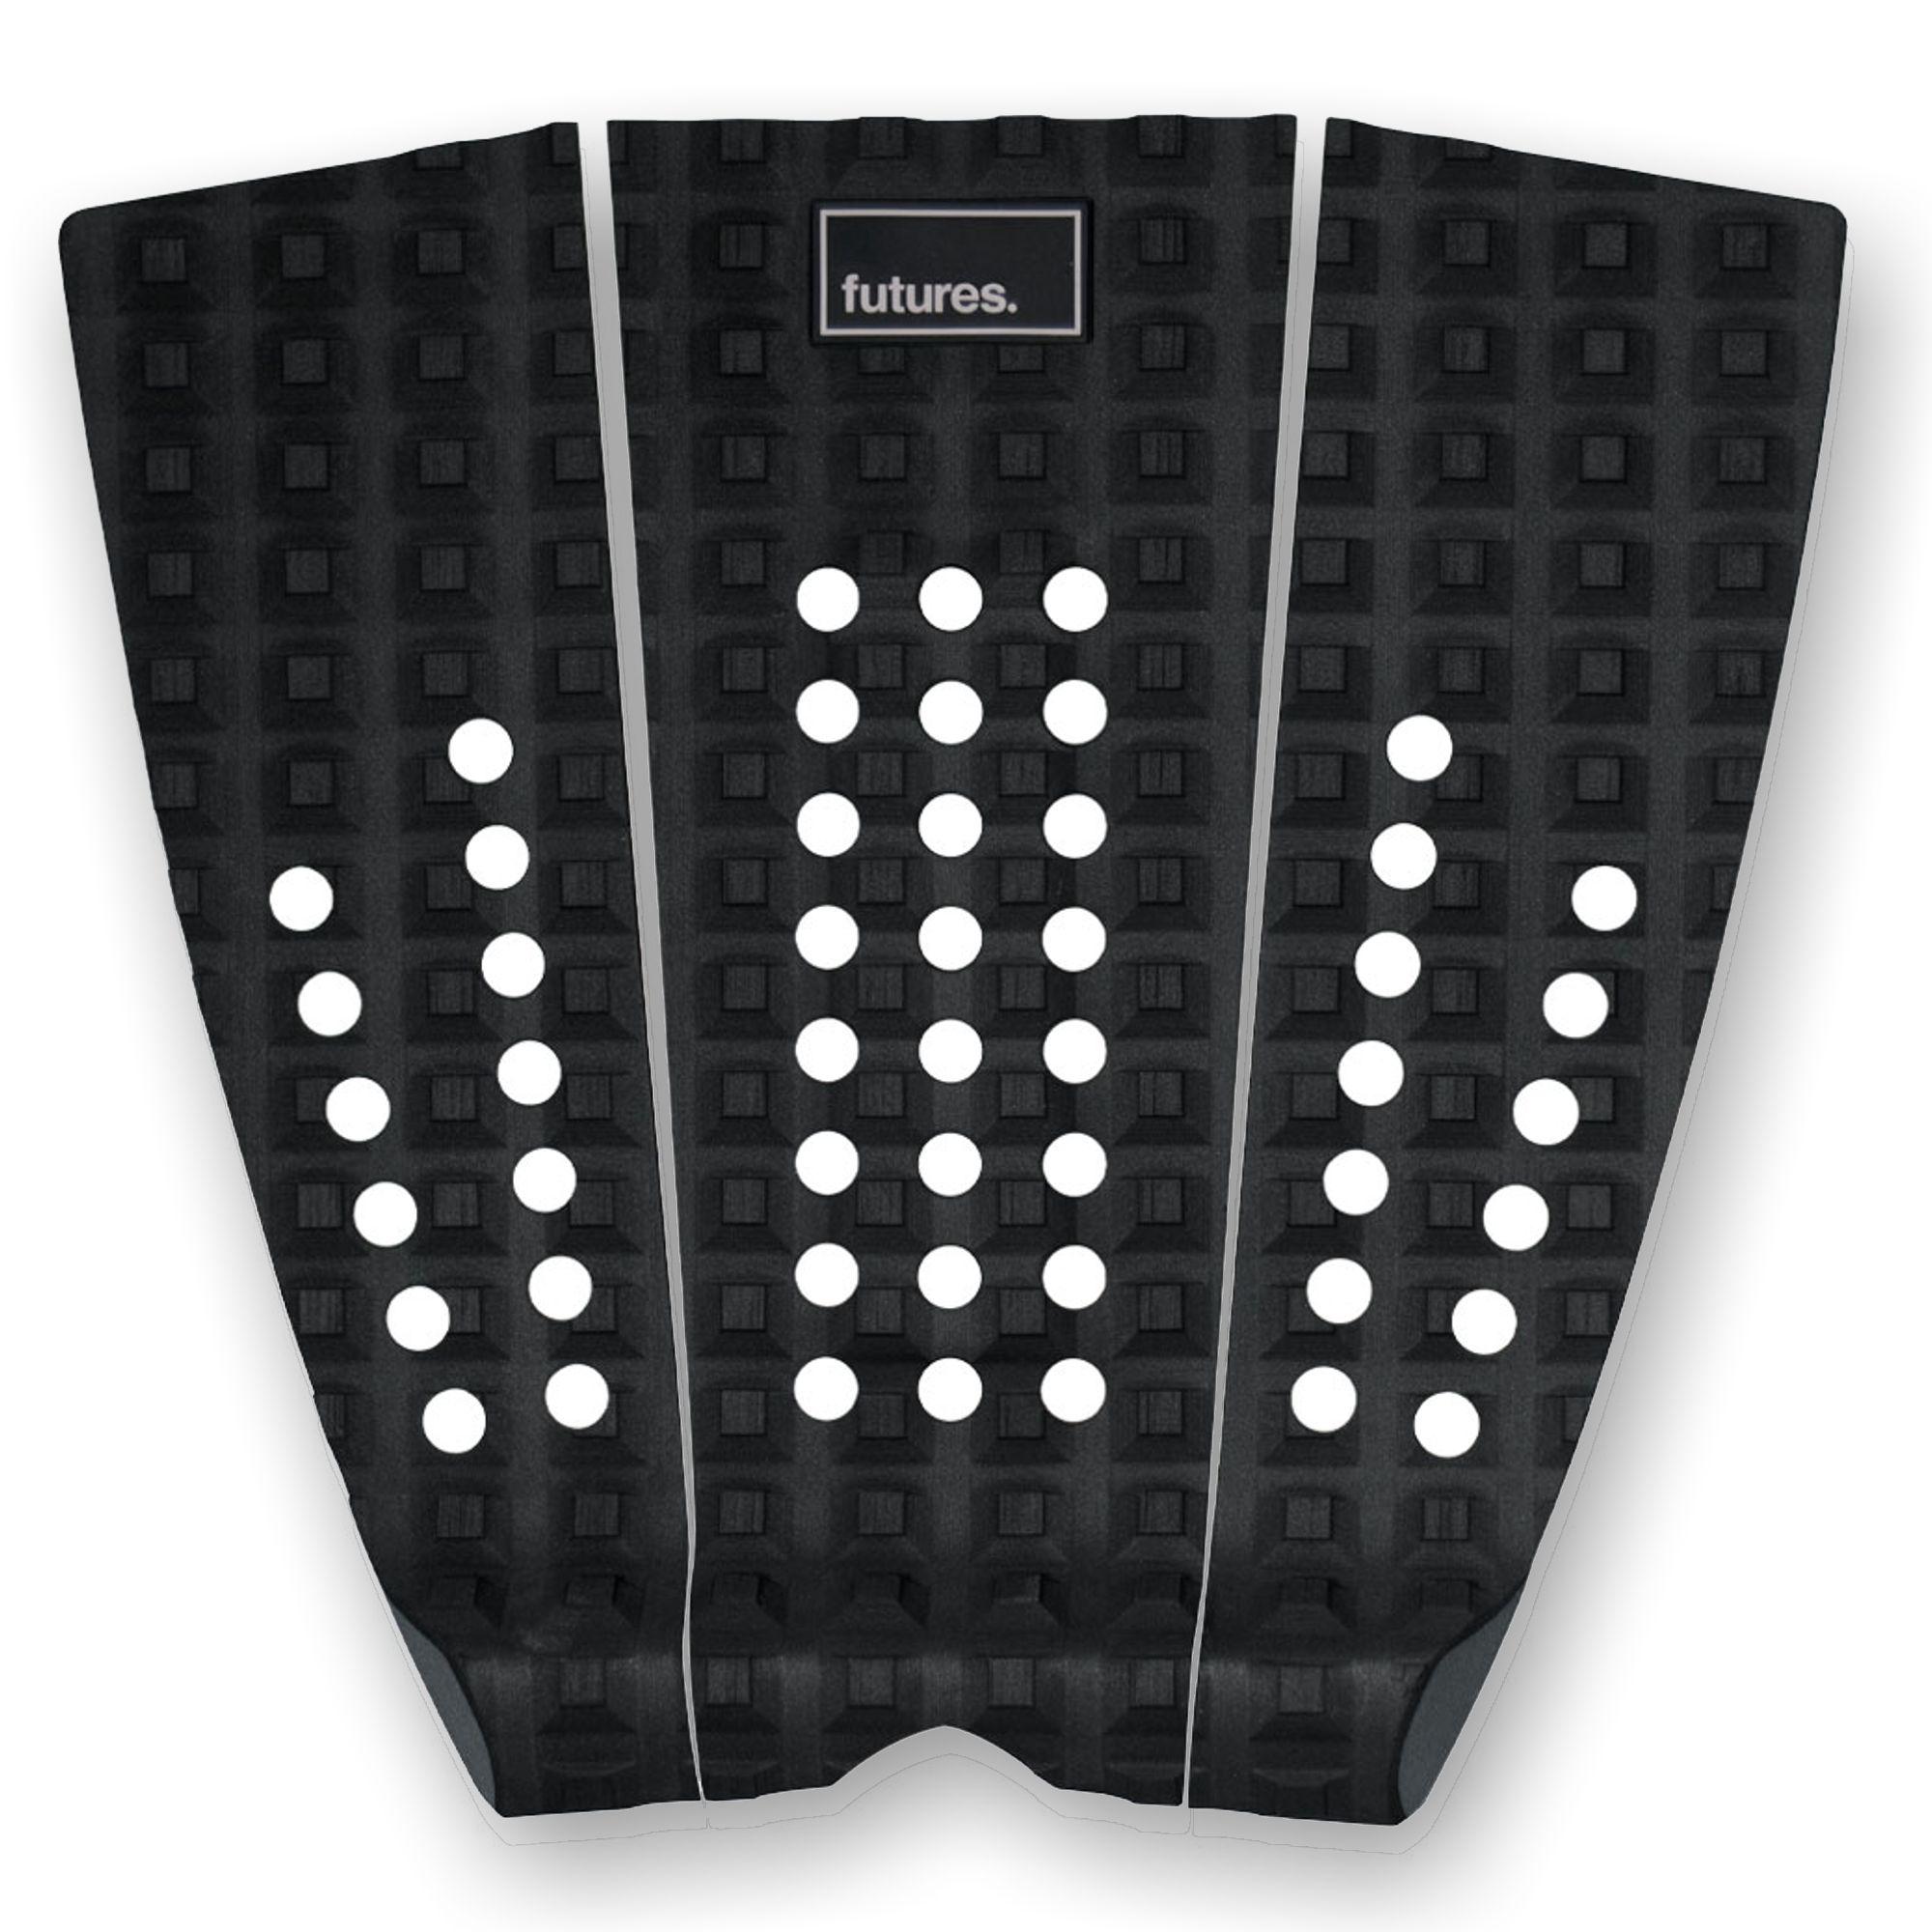 FUTURES Traction Pad Surfboard Footpad 3pcBrewster